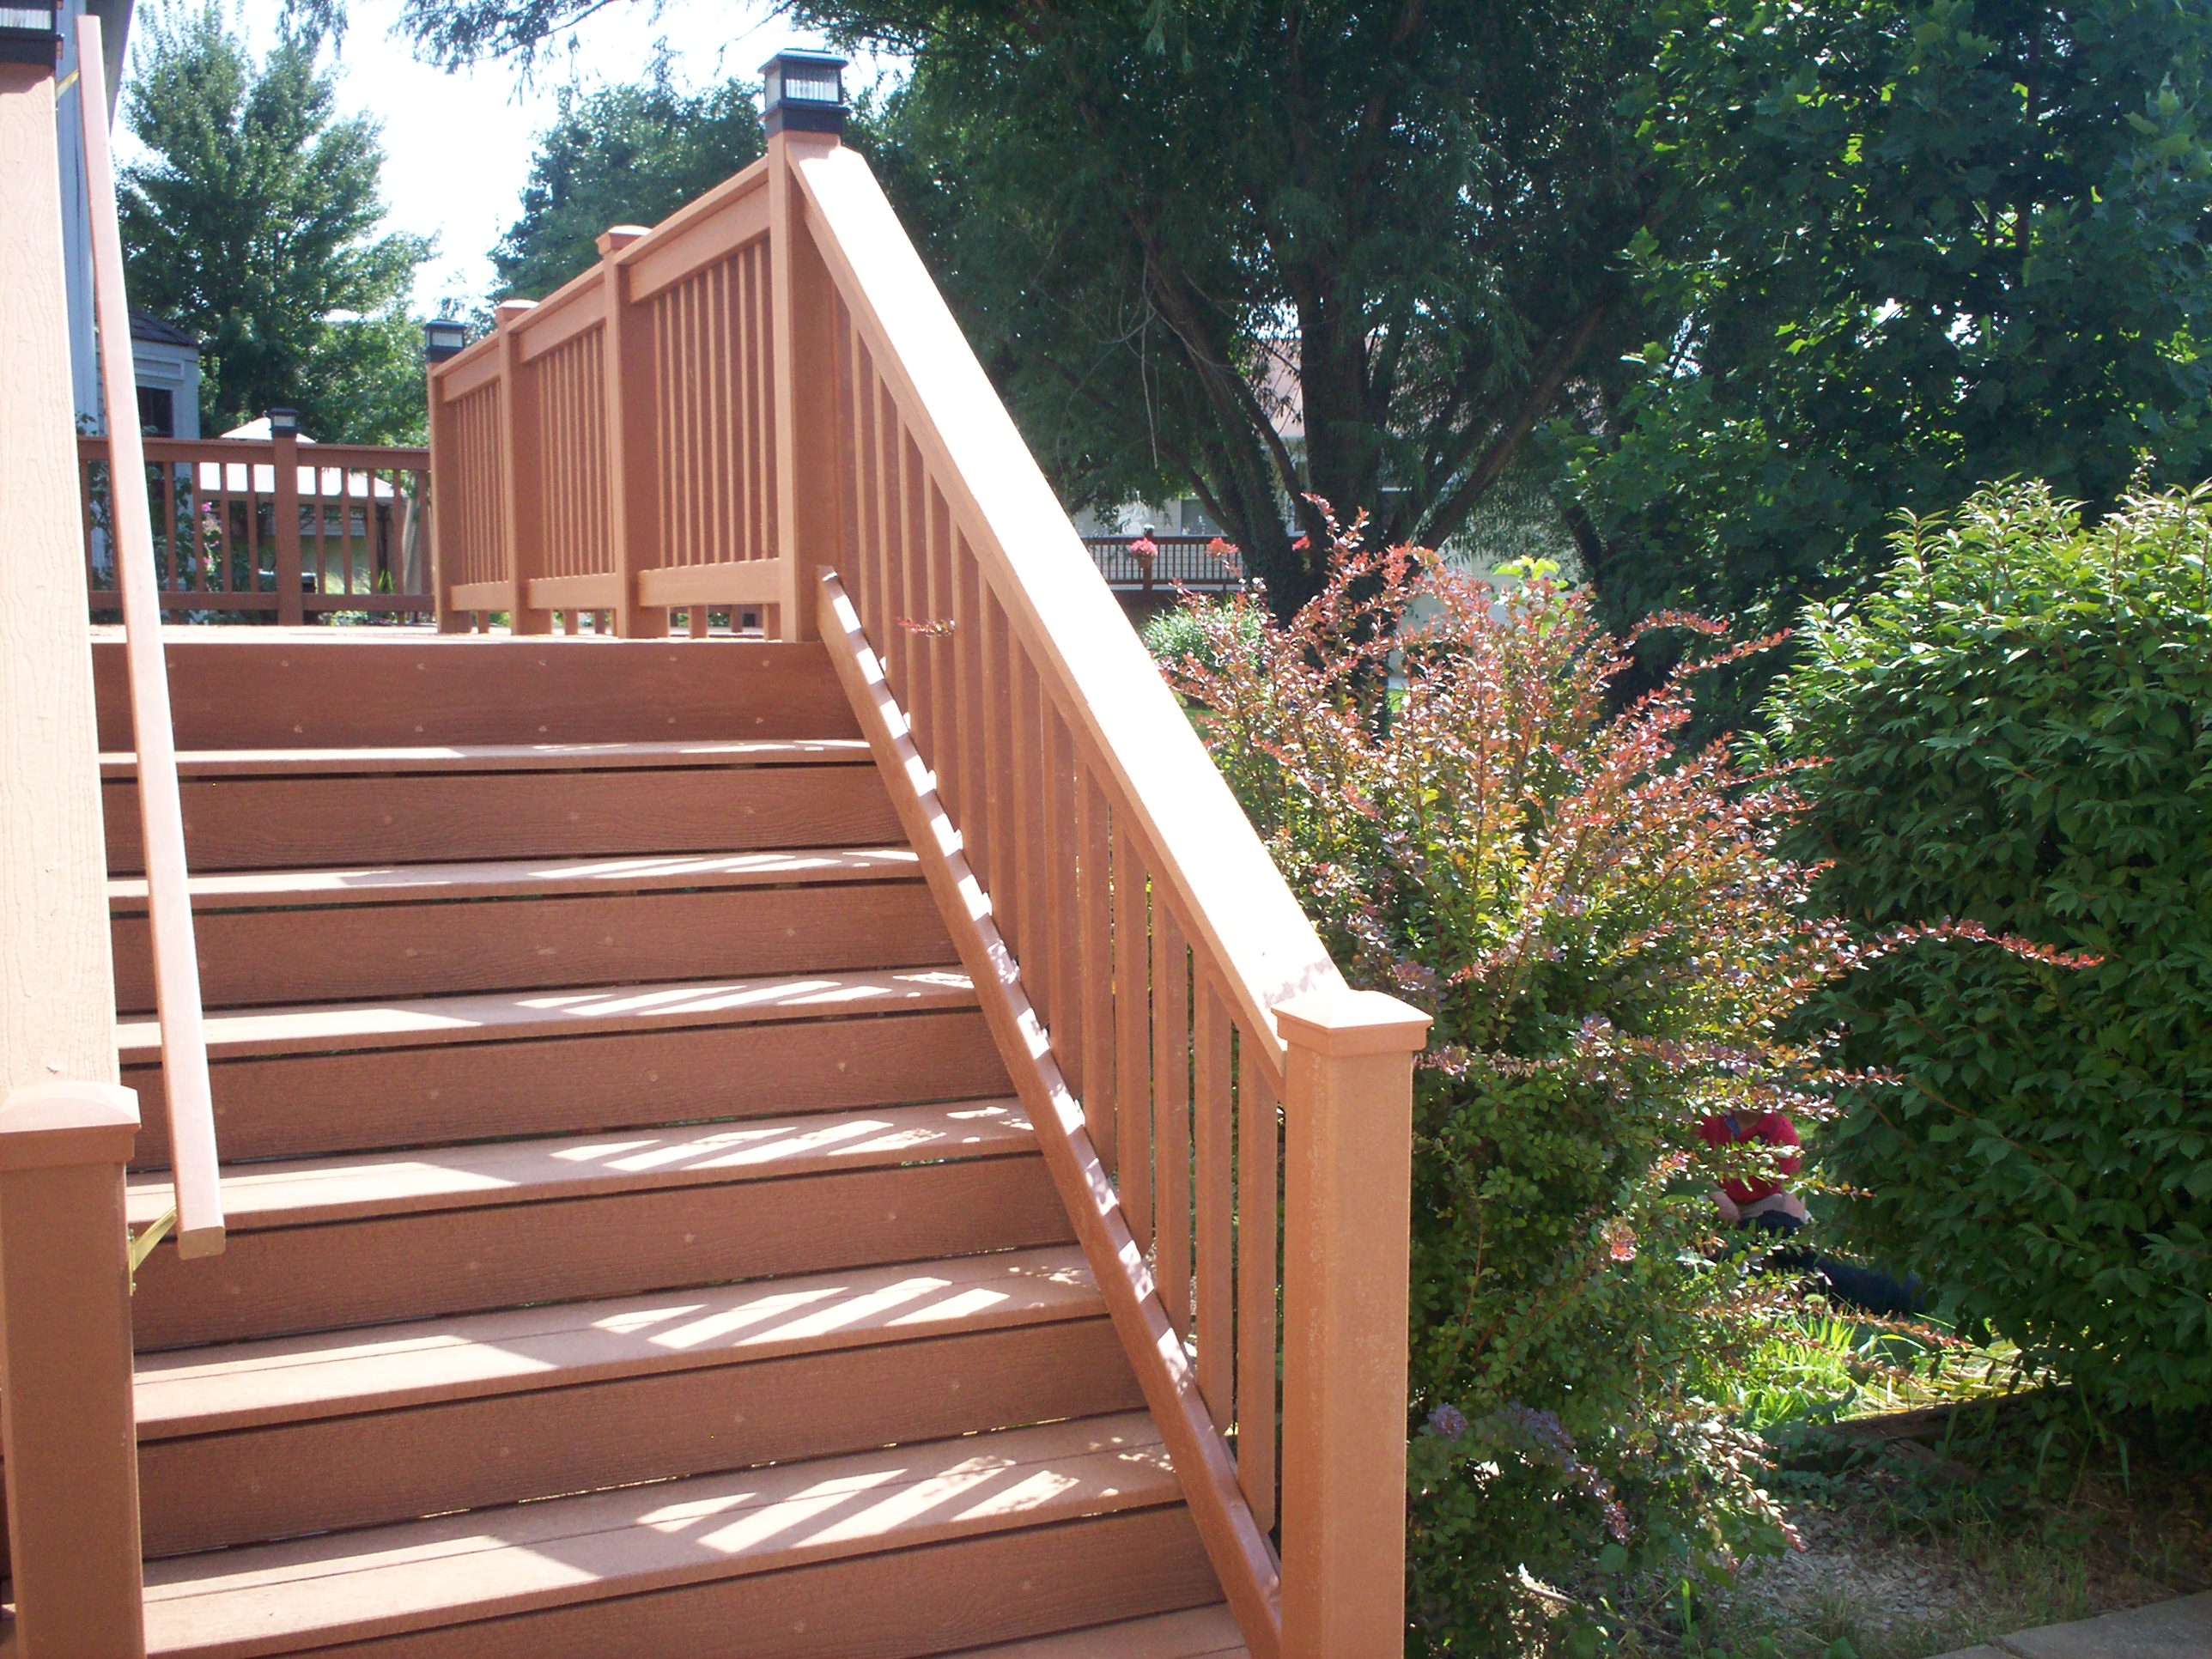 Deck Stairs Ideas How To Choose The Best Stair Design For Your   Best Stairs Design For Home   Spiral Staircase   Architecture   Staircase Remodel   Stairway   Interior Design Ideas